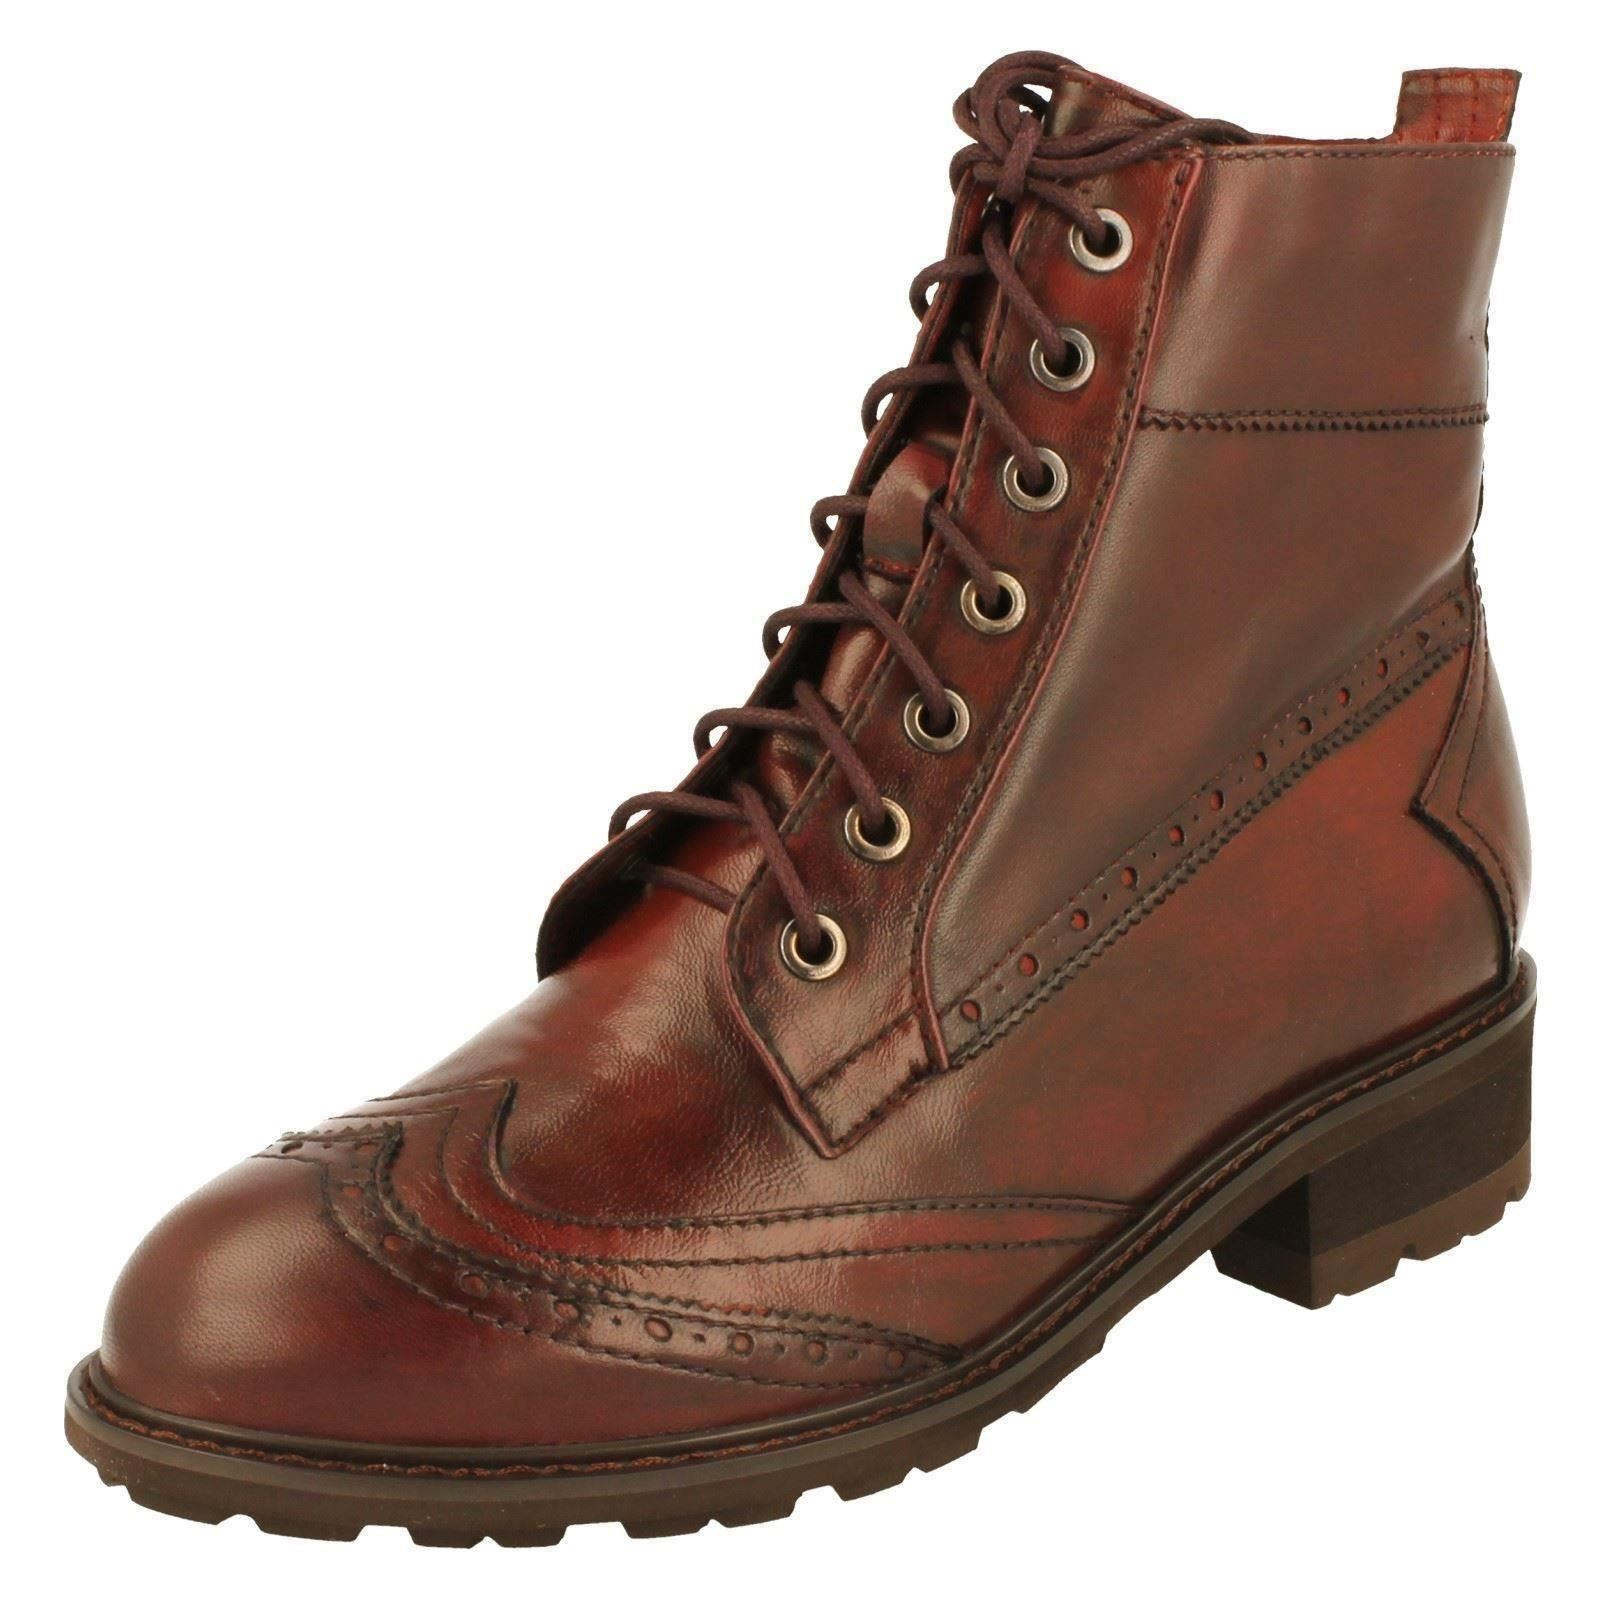 Mujer ROHDE Botas LABEL 6261-w